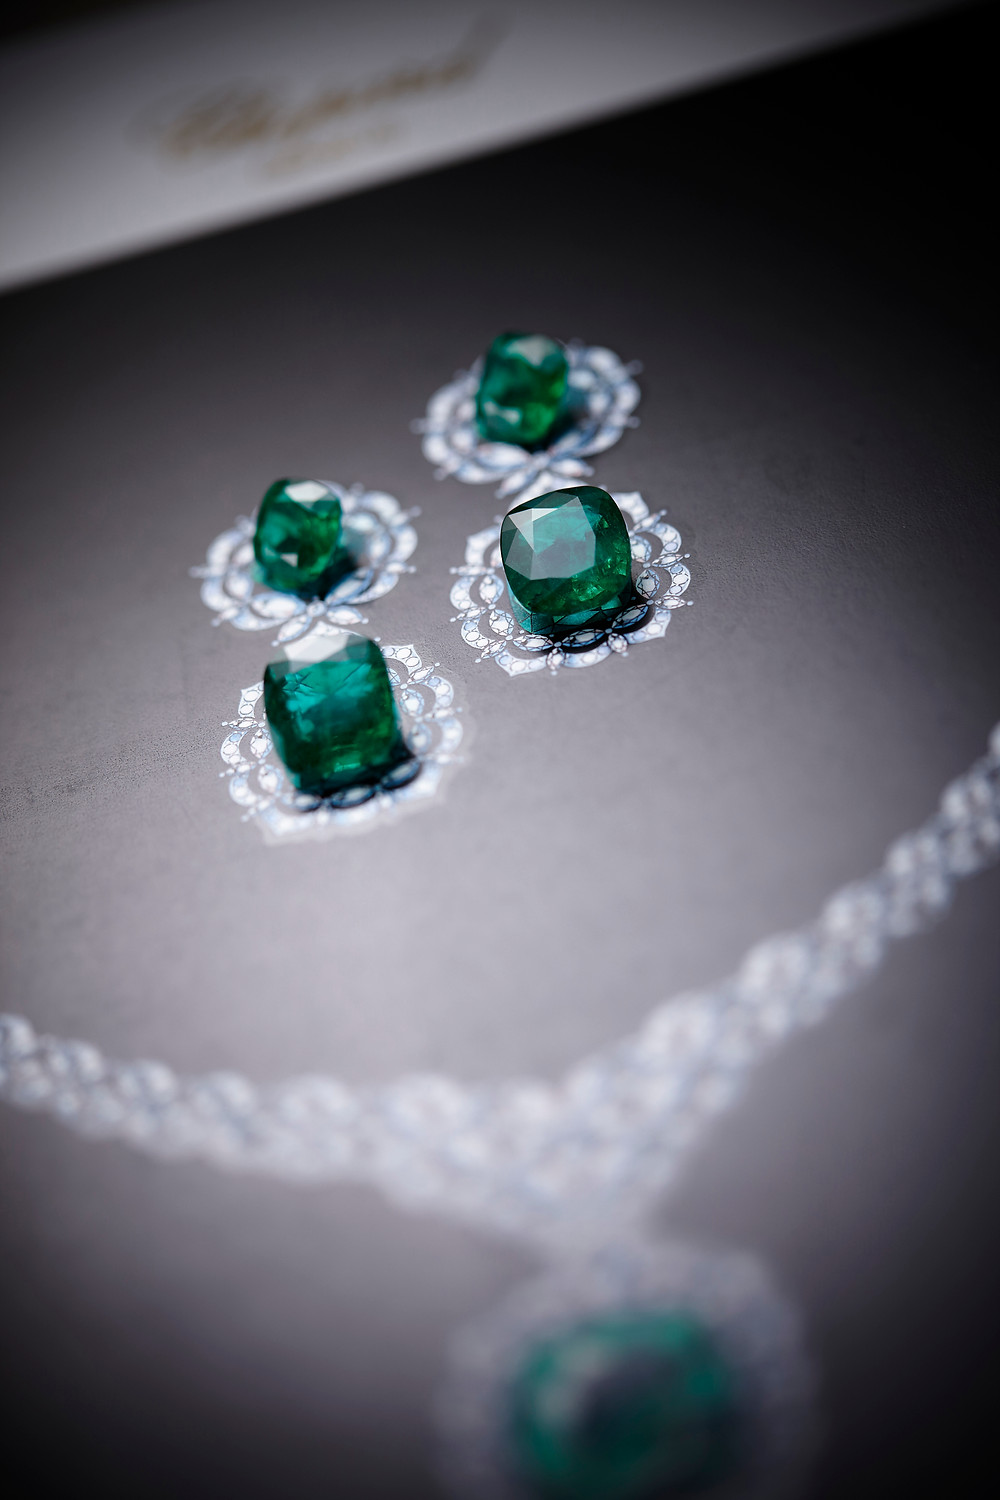 Emeralds during the design process